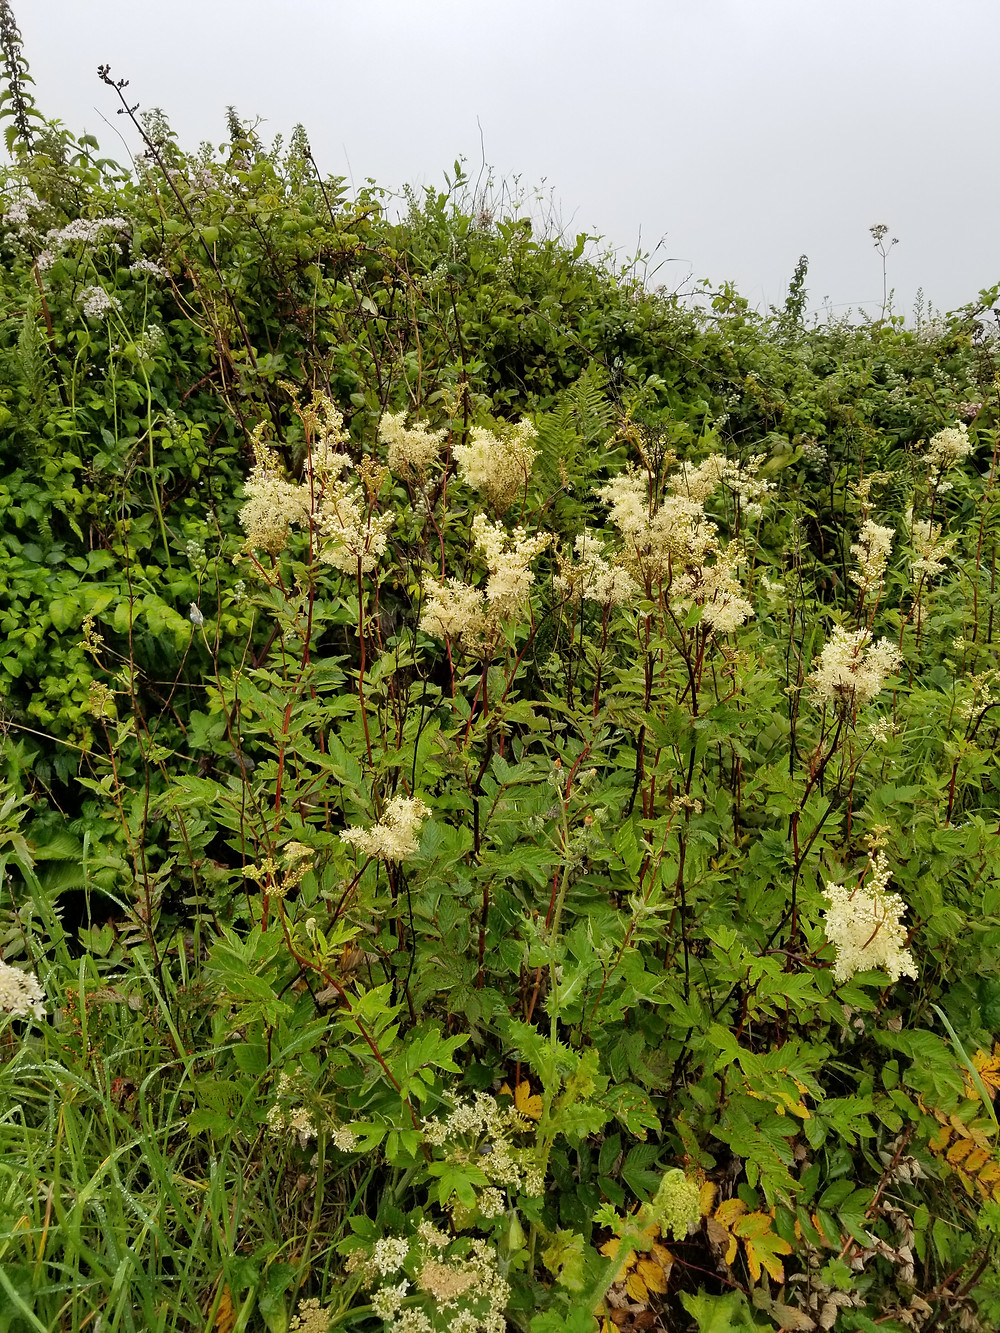 4.Doolin Pt roadside herbs: Meadowsweet, valerian, stinging nettles and sedge grass. Maybe there is greater burnet at the bottom left.